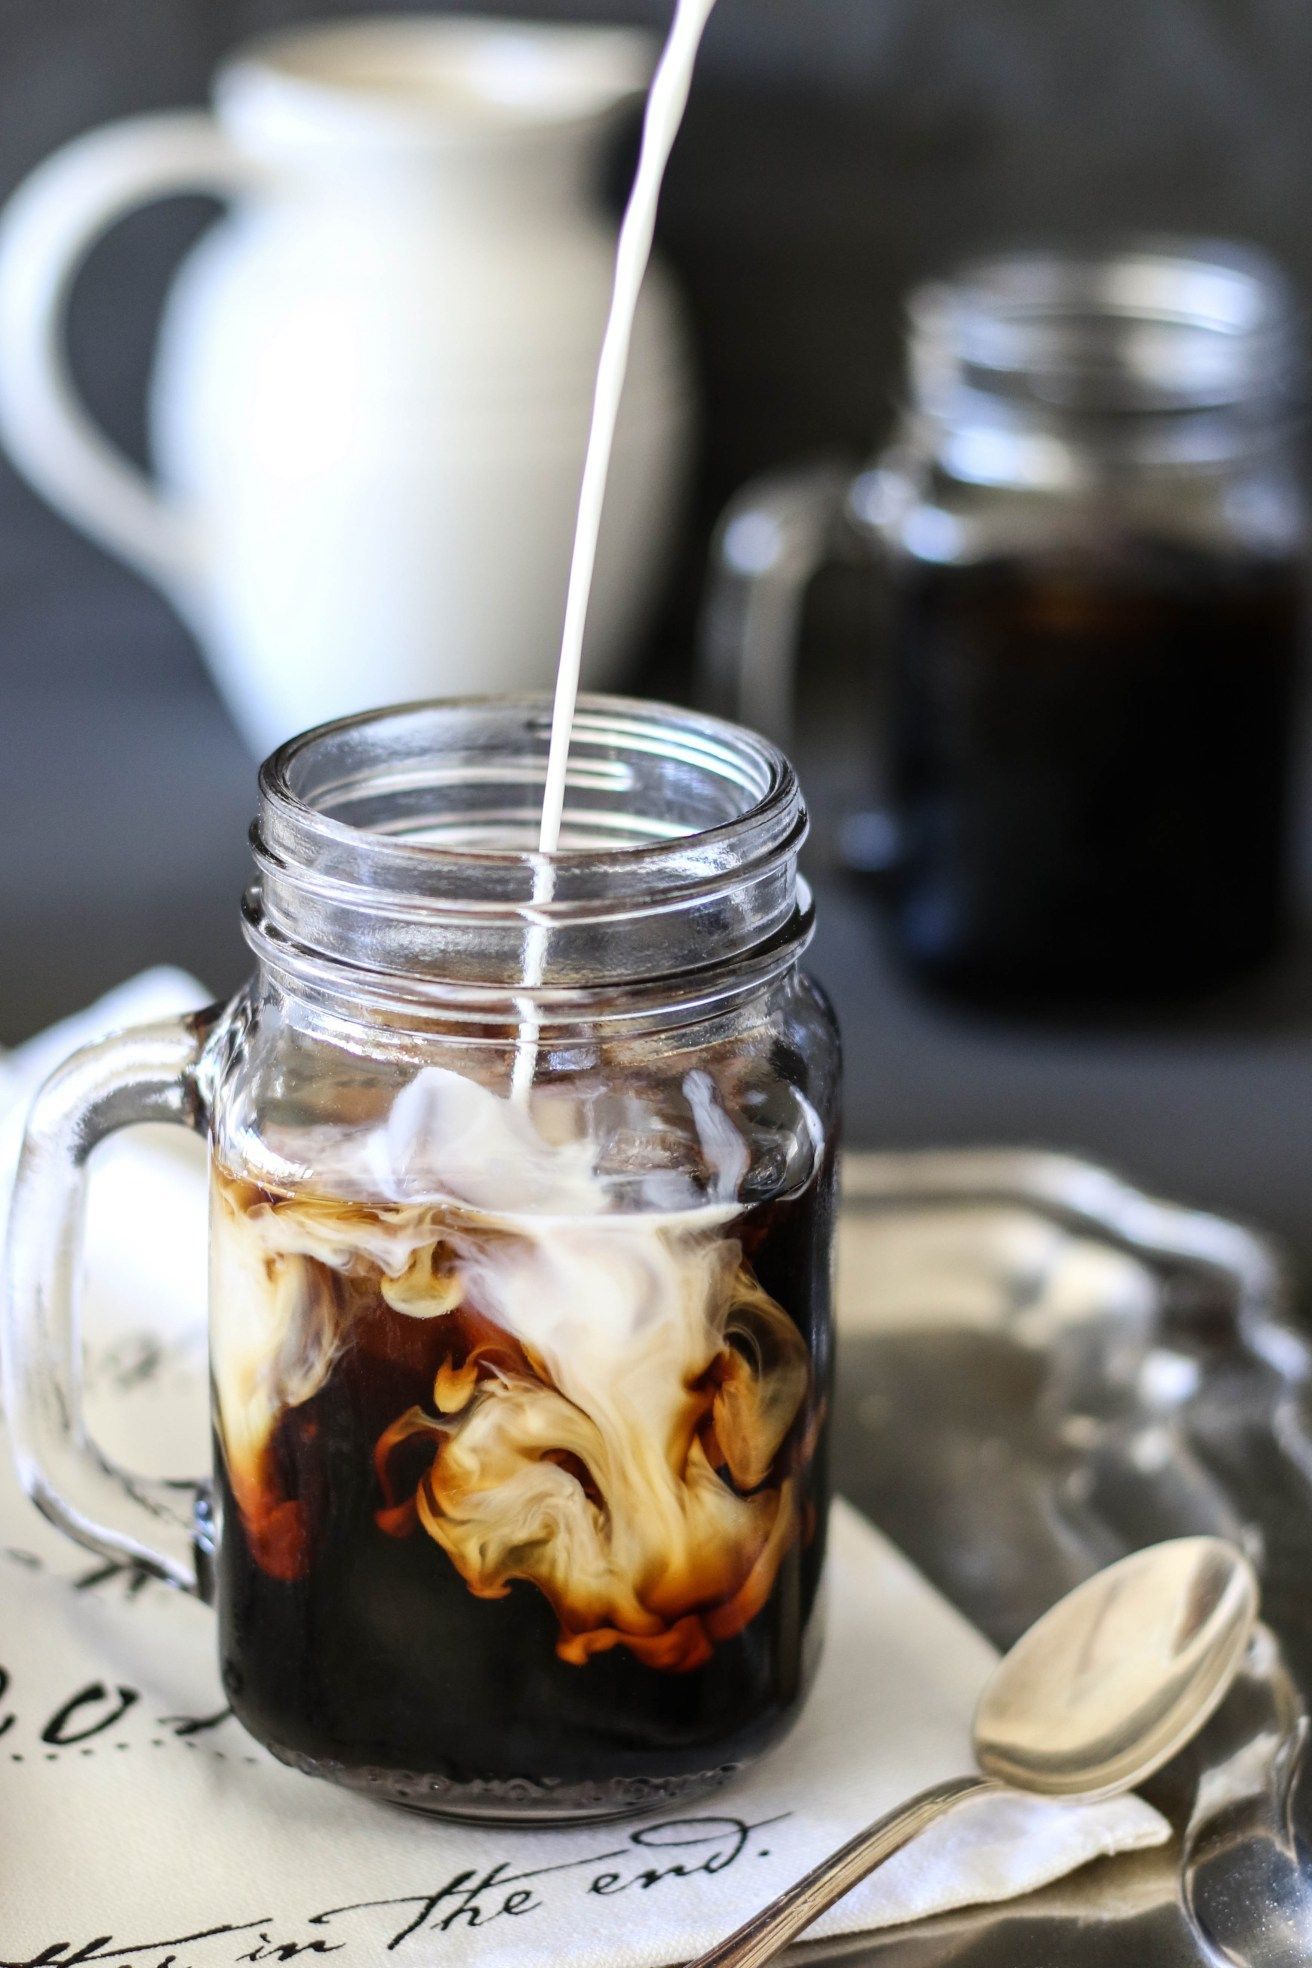 Cold Brew Coffee Coffee photography, Coffee latte